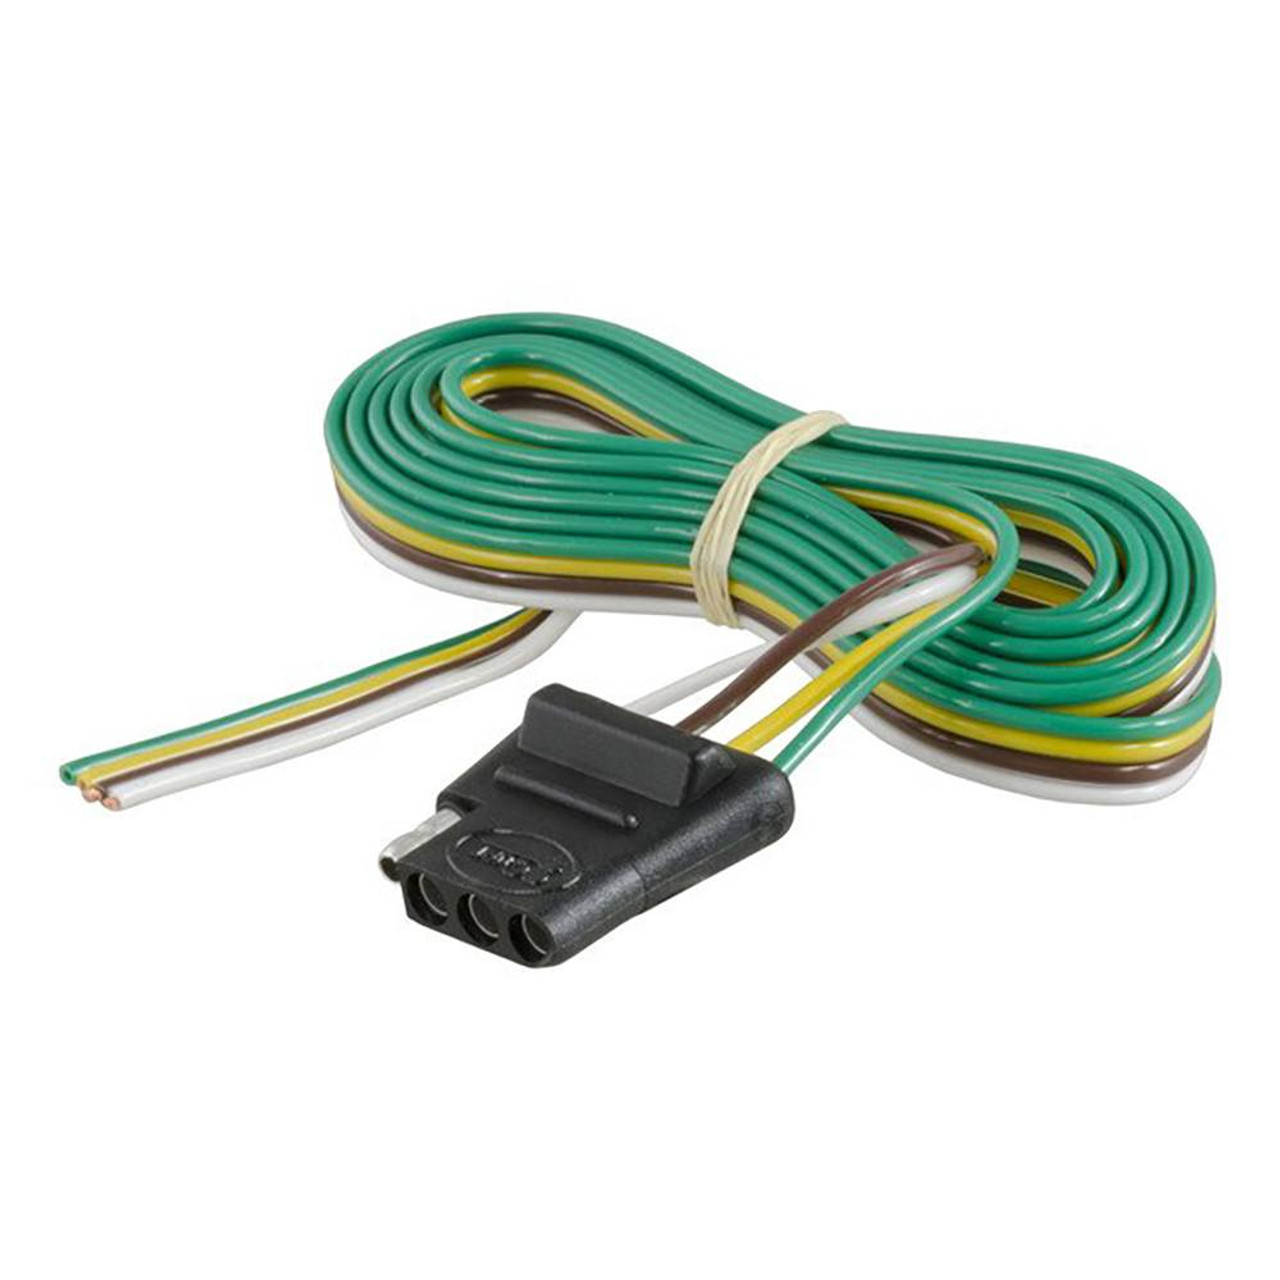 4-Way Flat Wiring Connector - 60 Inch Vehicle Side